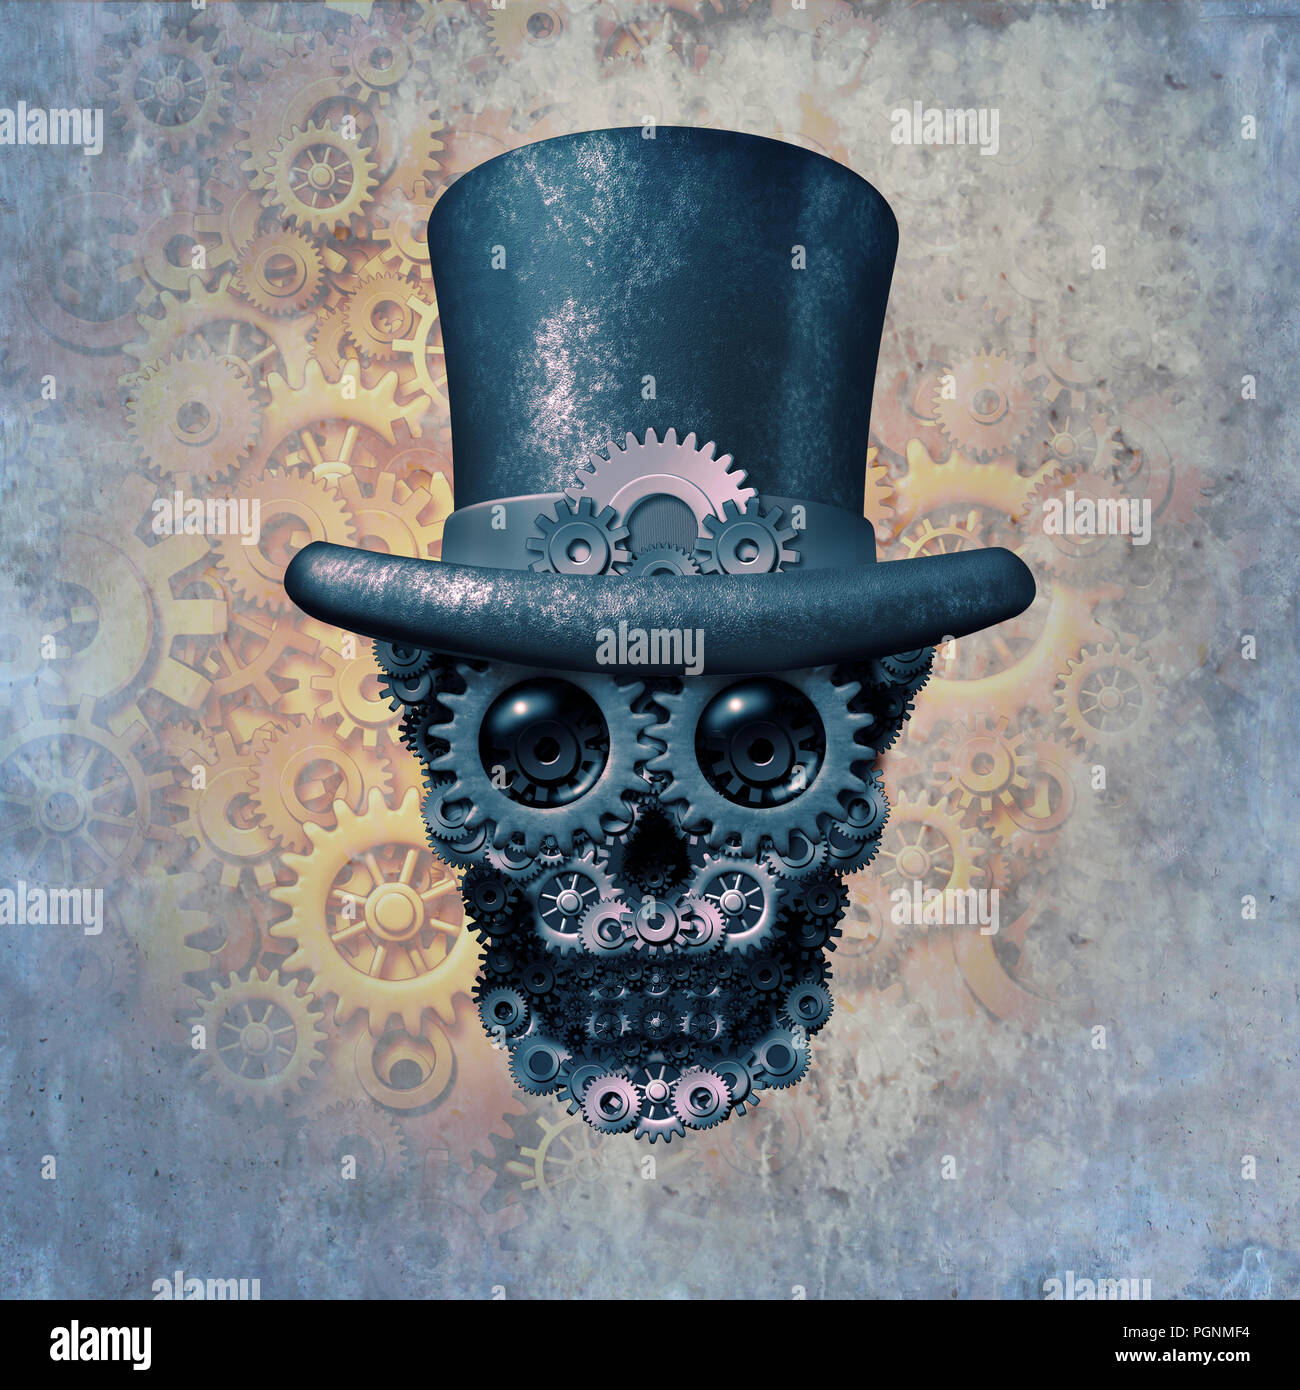 Steampunk skull concept or steam punk science fiction historical fantasy with a group of gears and cogs shaped as a head skeleton. - Stock Image